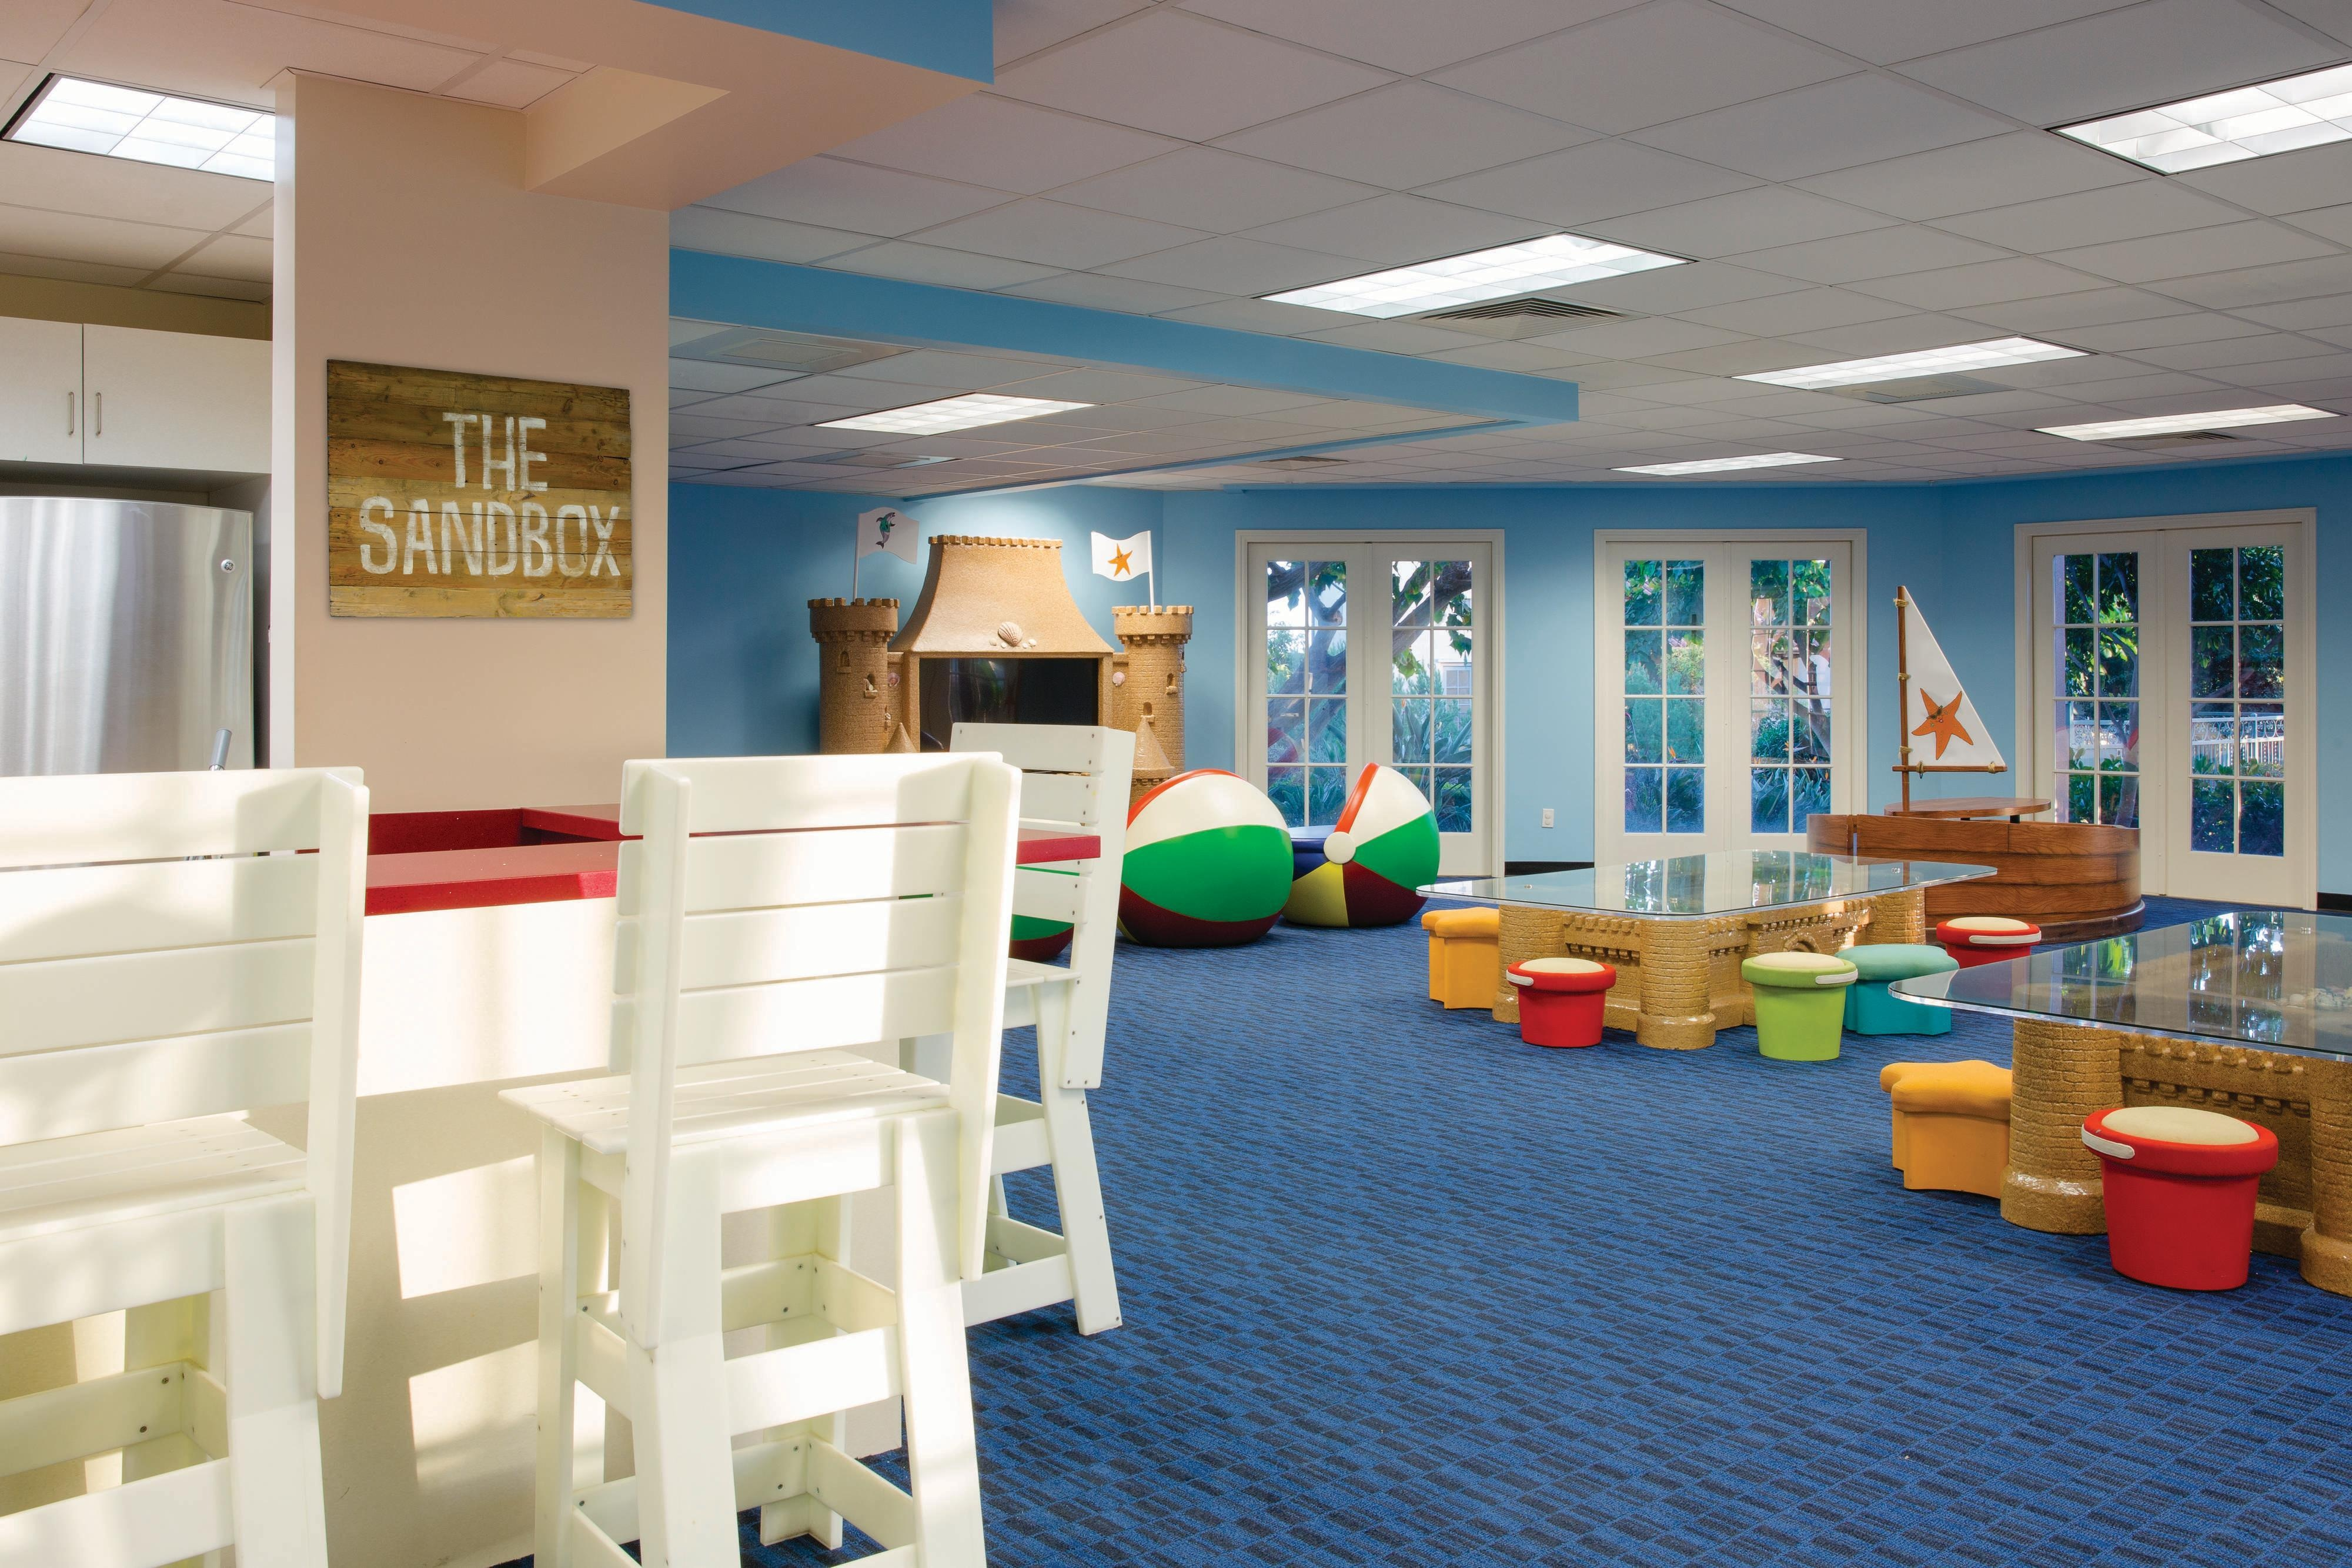 The Sandbox Kids Club